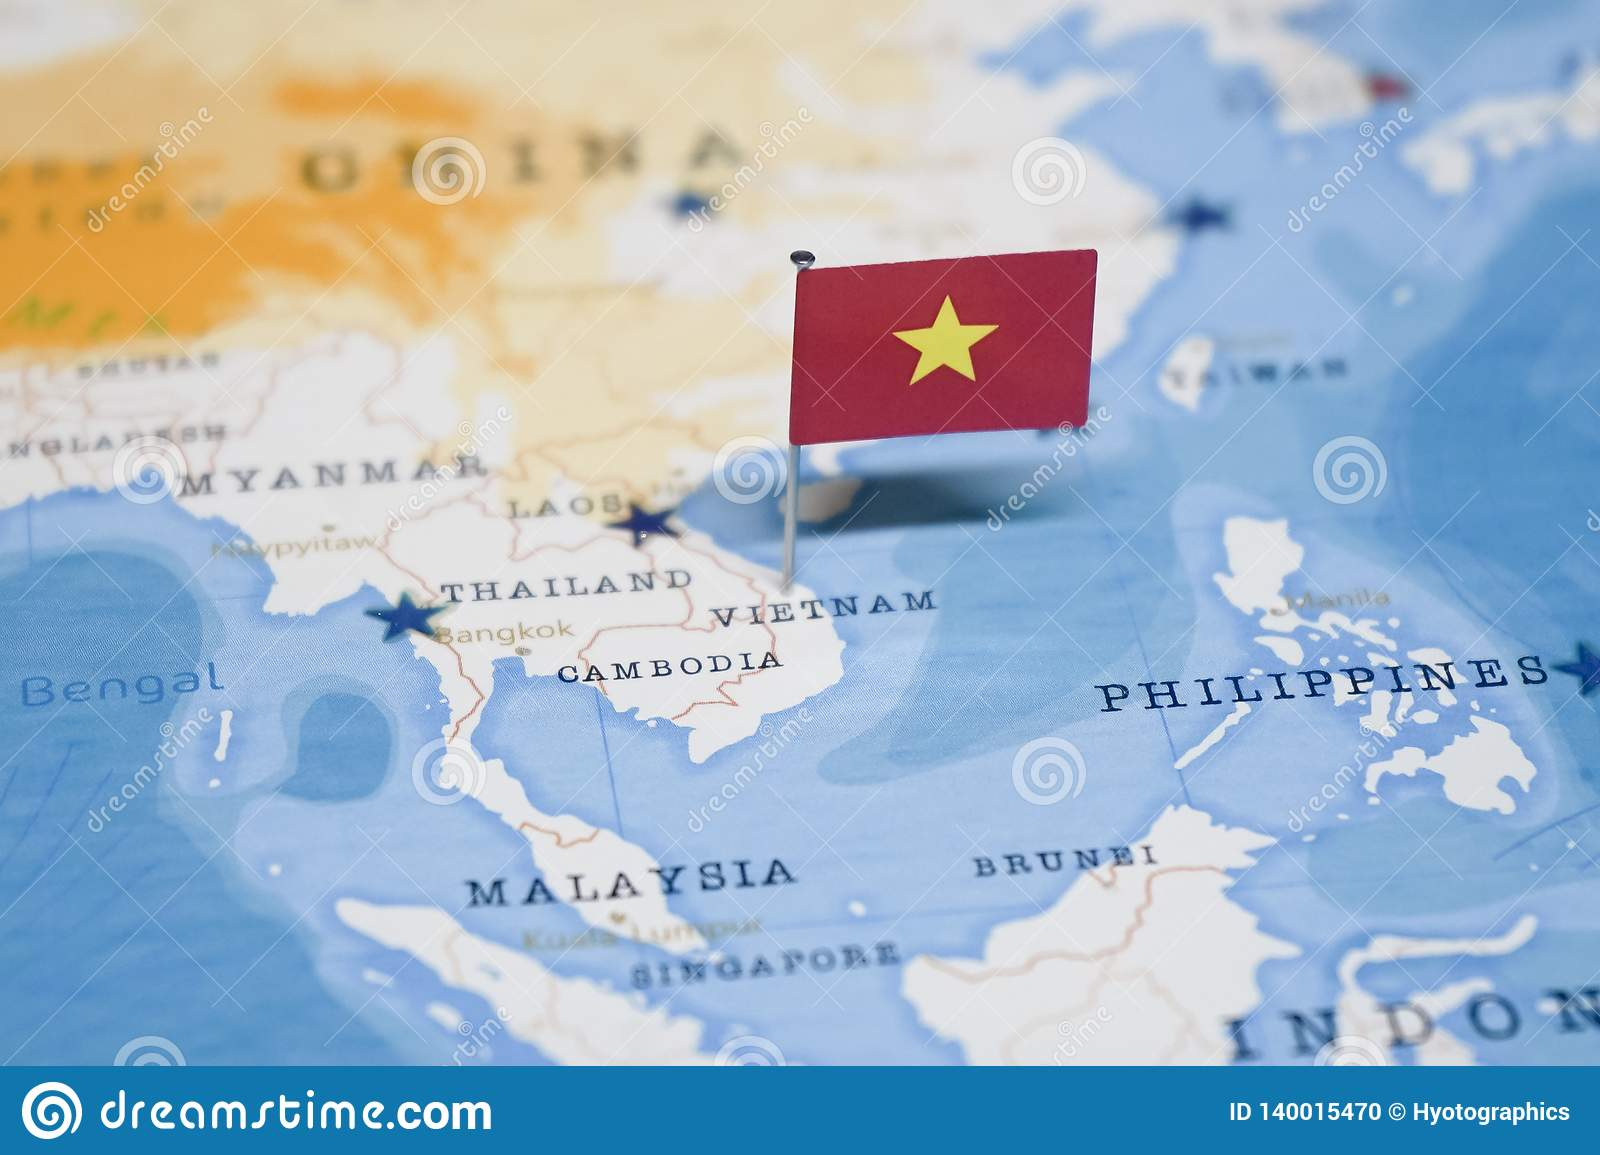 The Flag Of Vietnam In The World Map Stock Photo - Image of planet ...